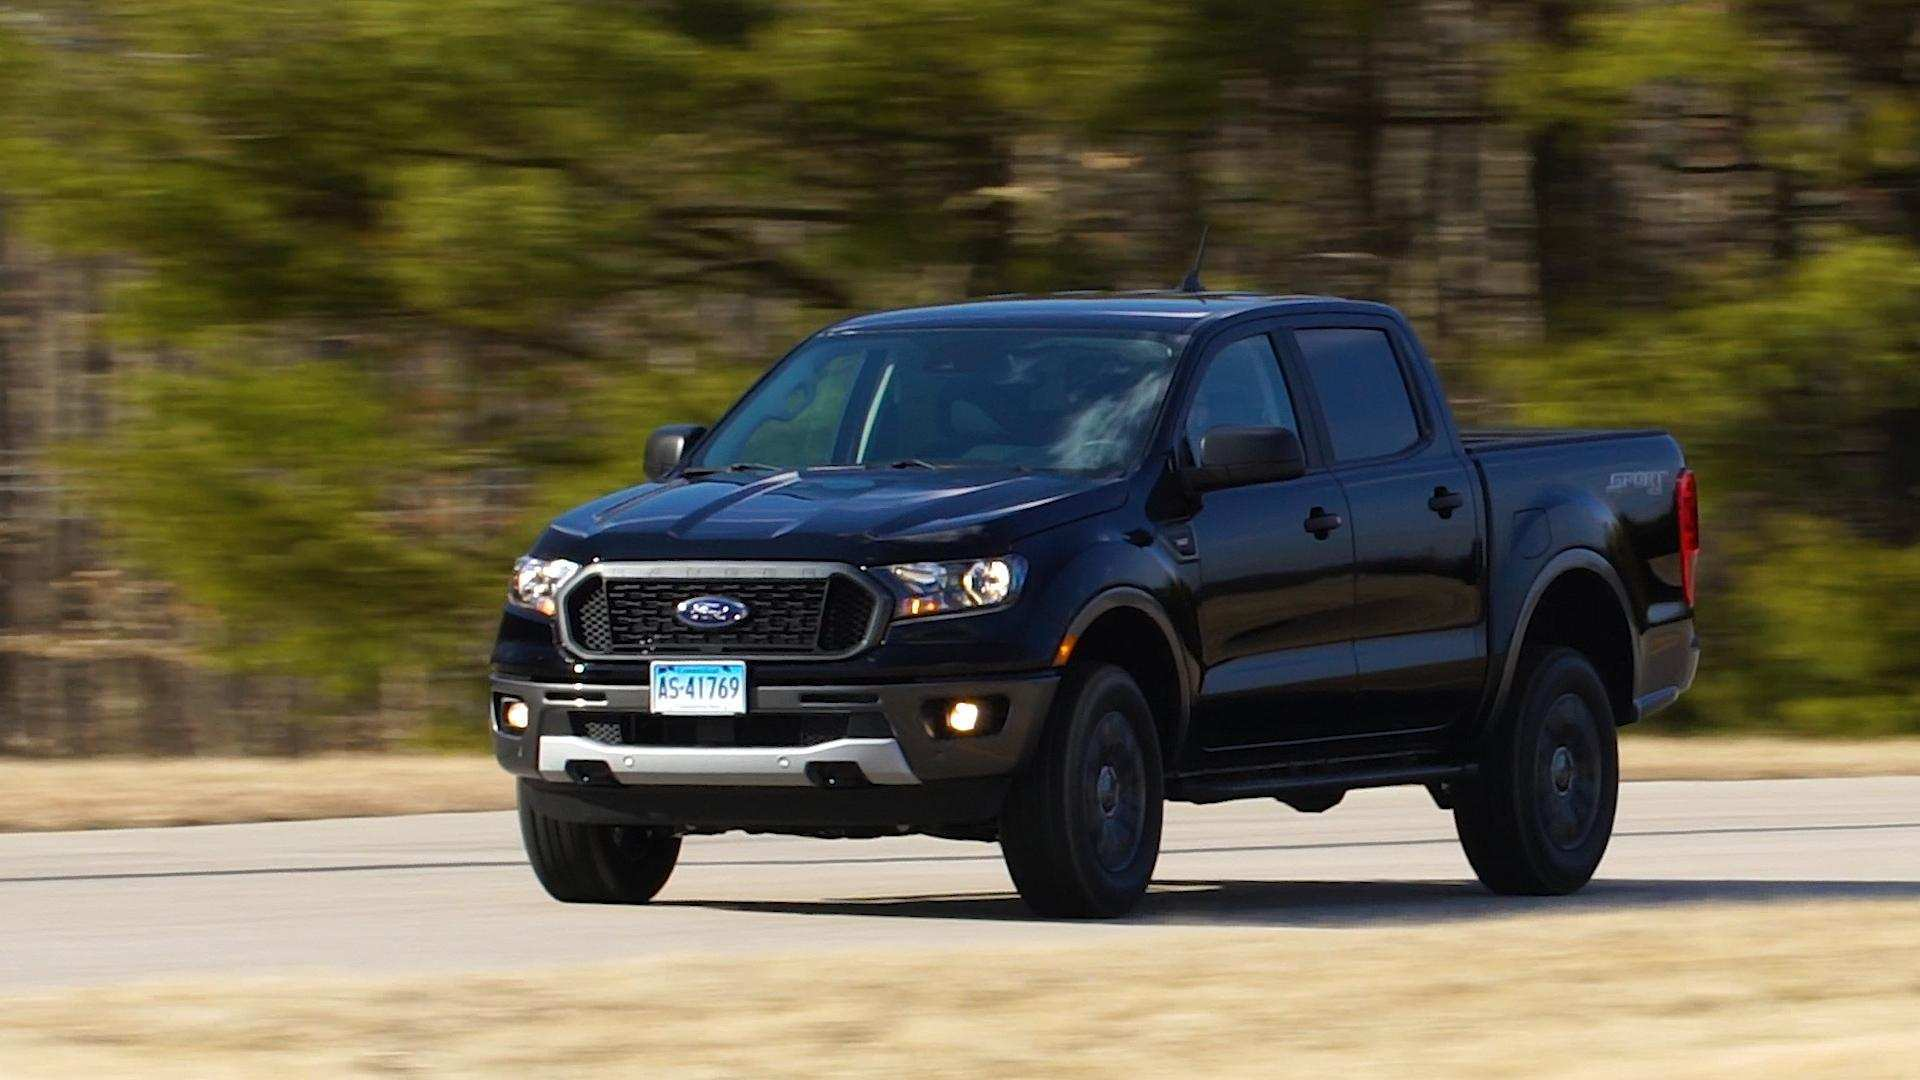 56 Best Review New Release Date Of 2019 Ford Ranger First Drive Engine for New Release Date Of 2019 Ford Ranger First Drive